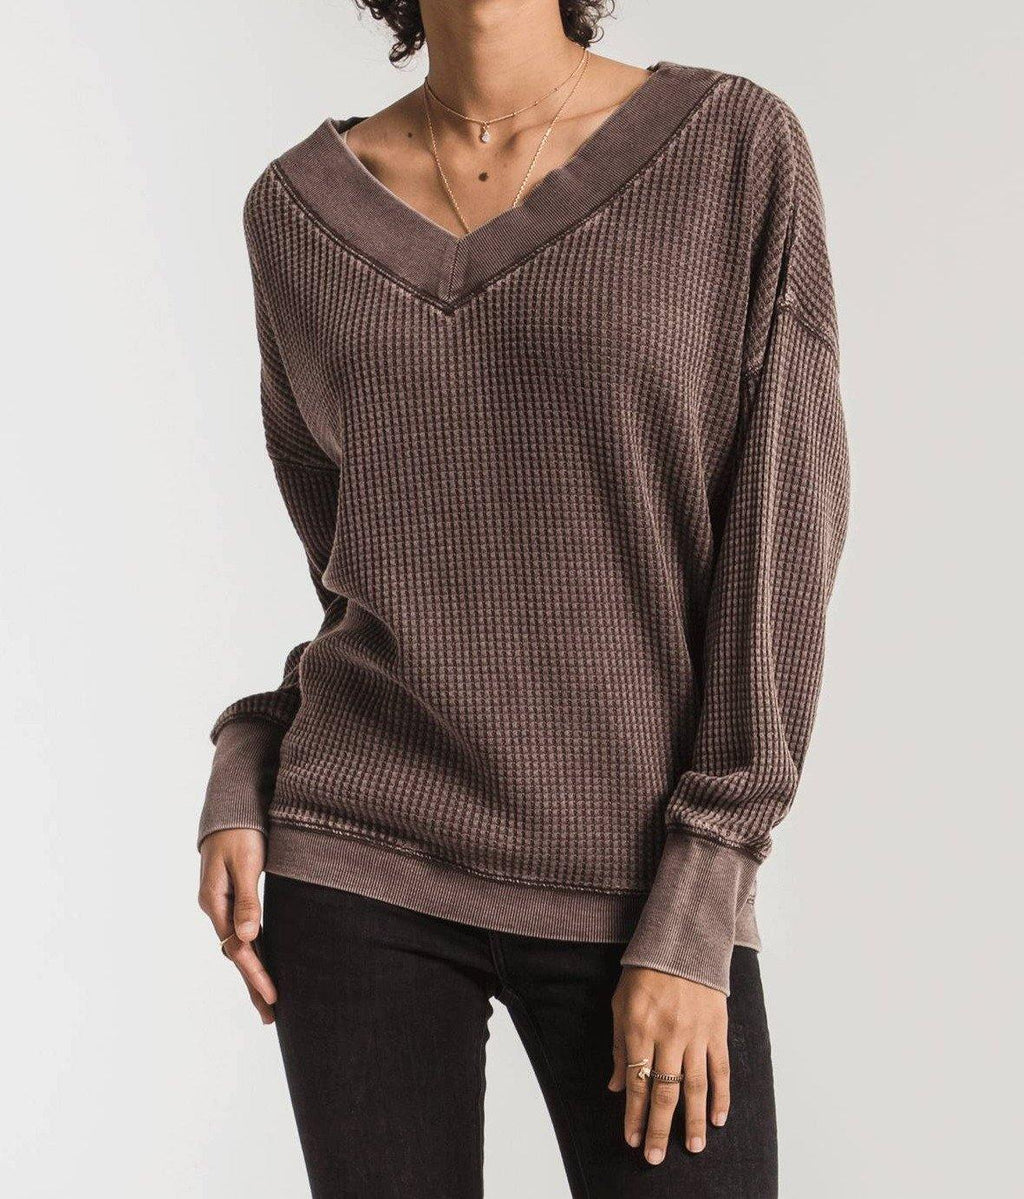 Emilia Thermal Top - The Salty Mare